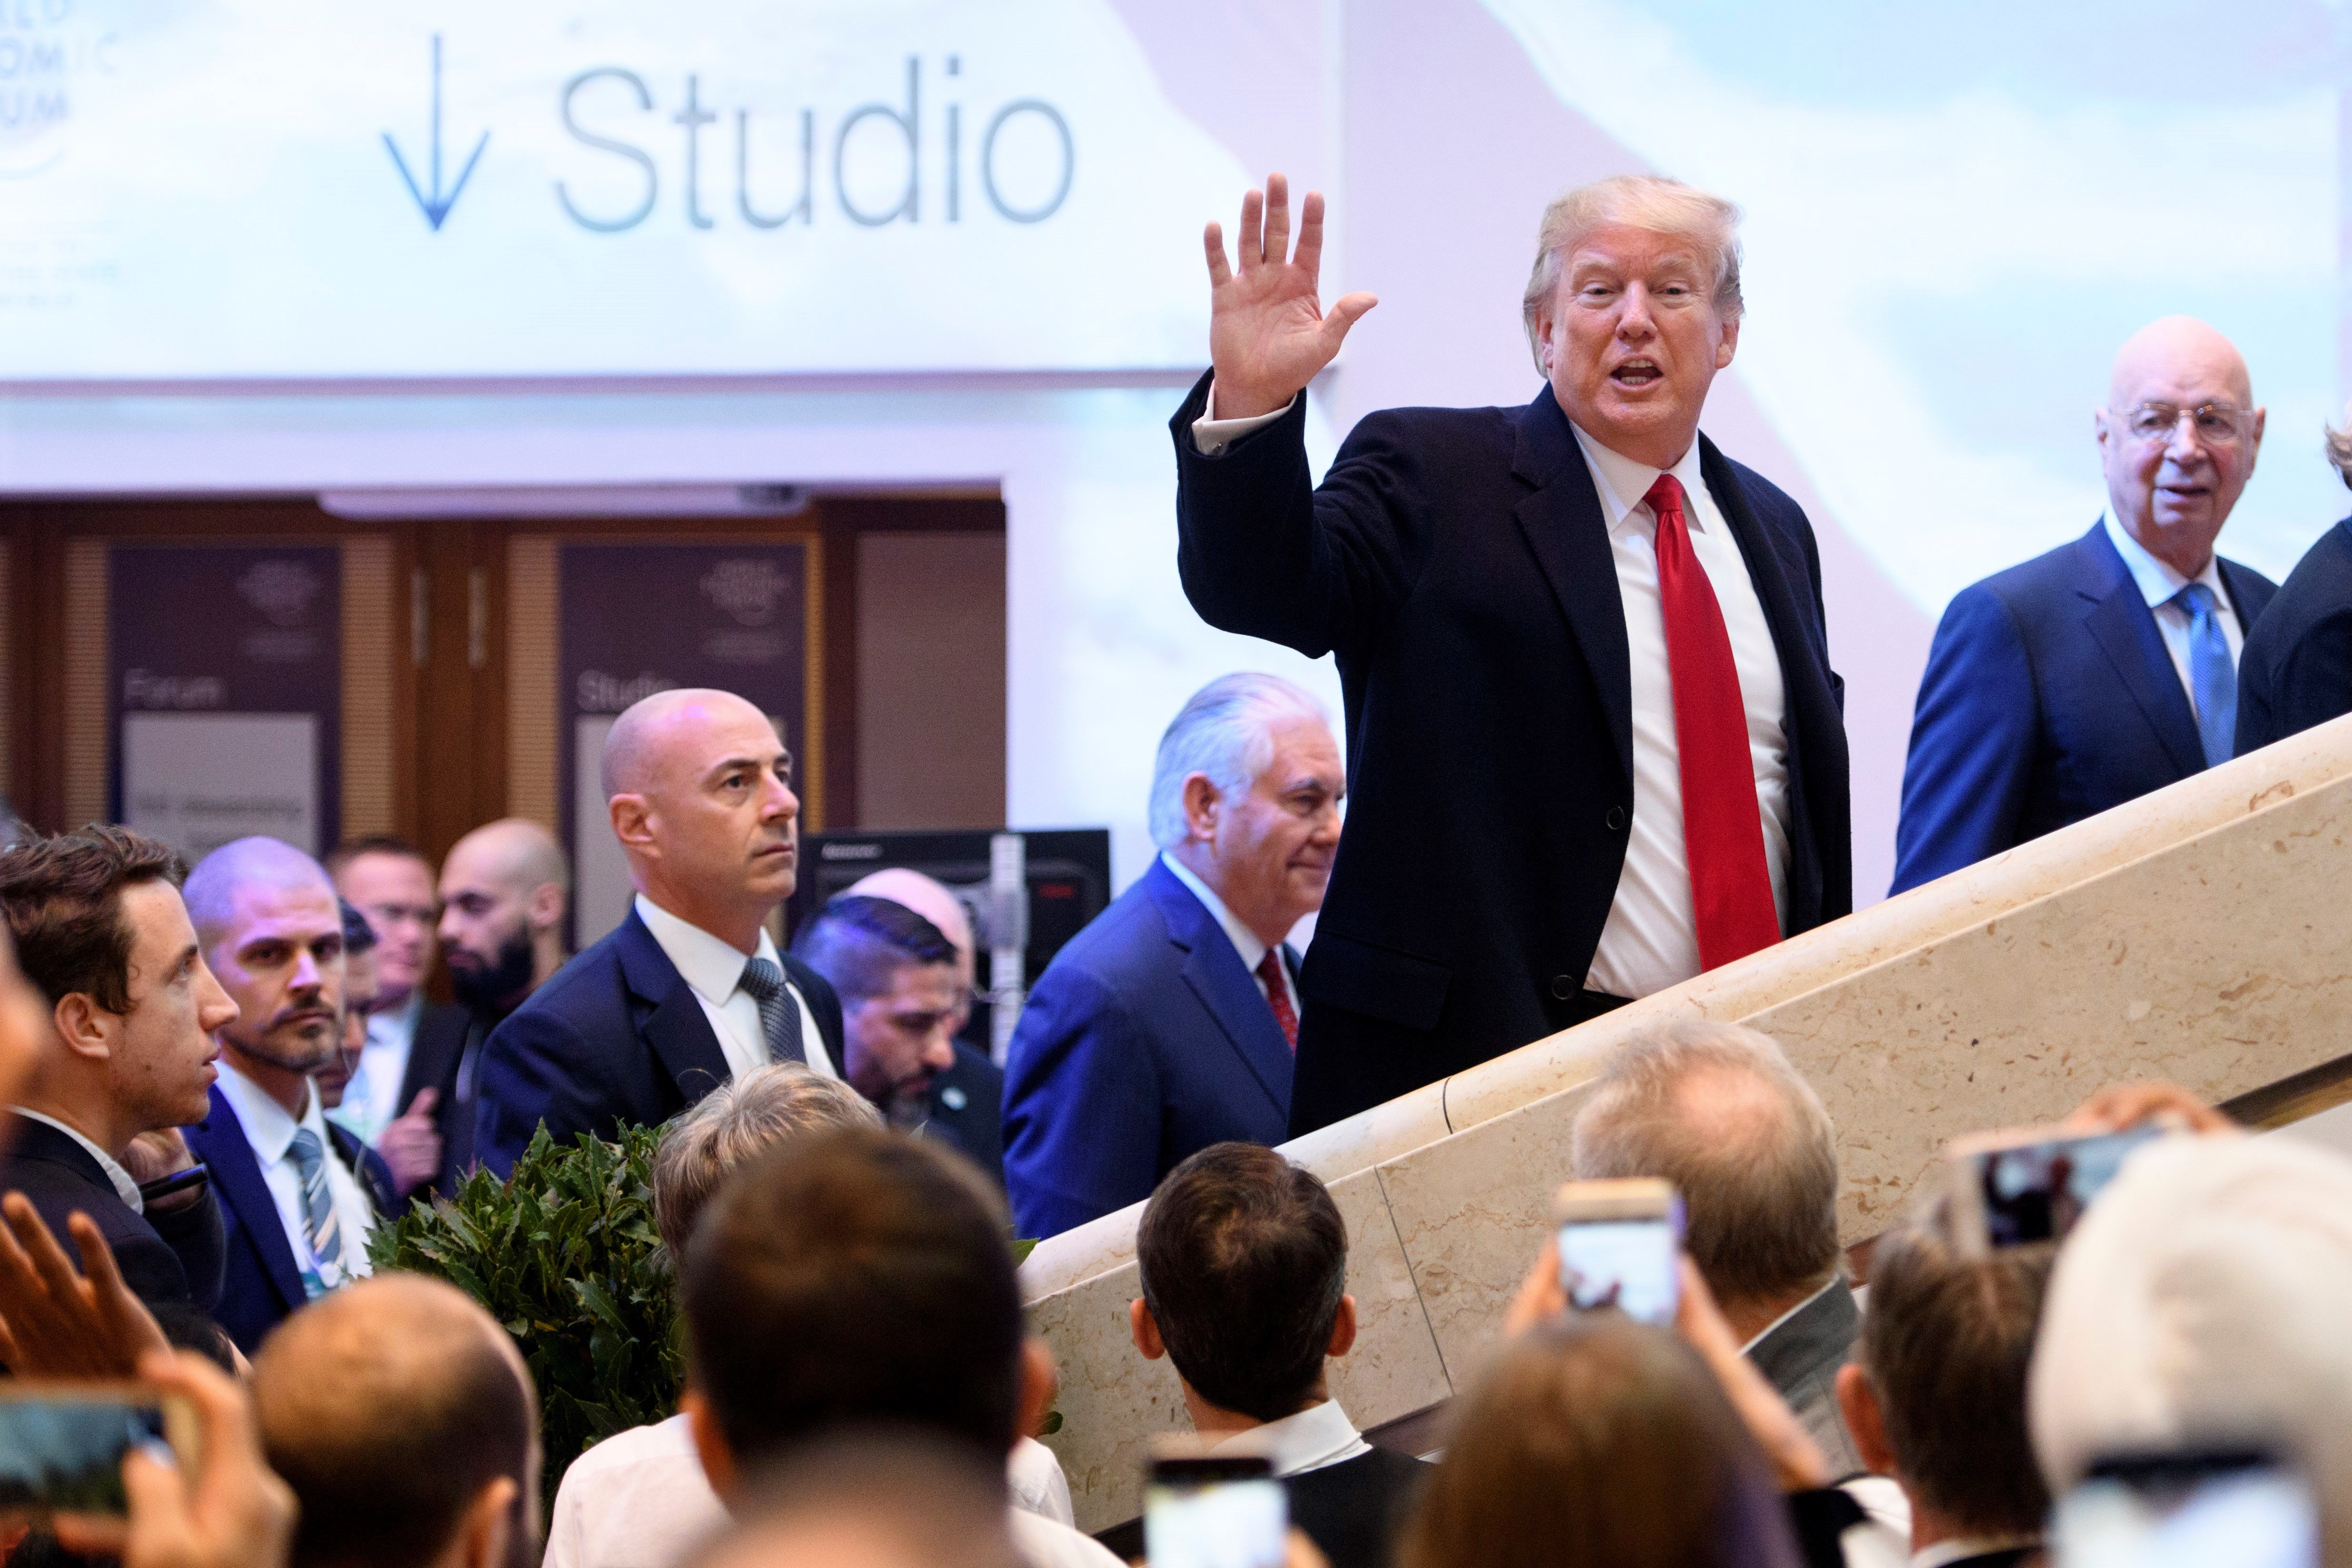 US President Donald Trump waves to reporters after participating in a session at the World Economic Forum in Davos, Switzerland, on Jan. 25, 2018.